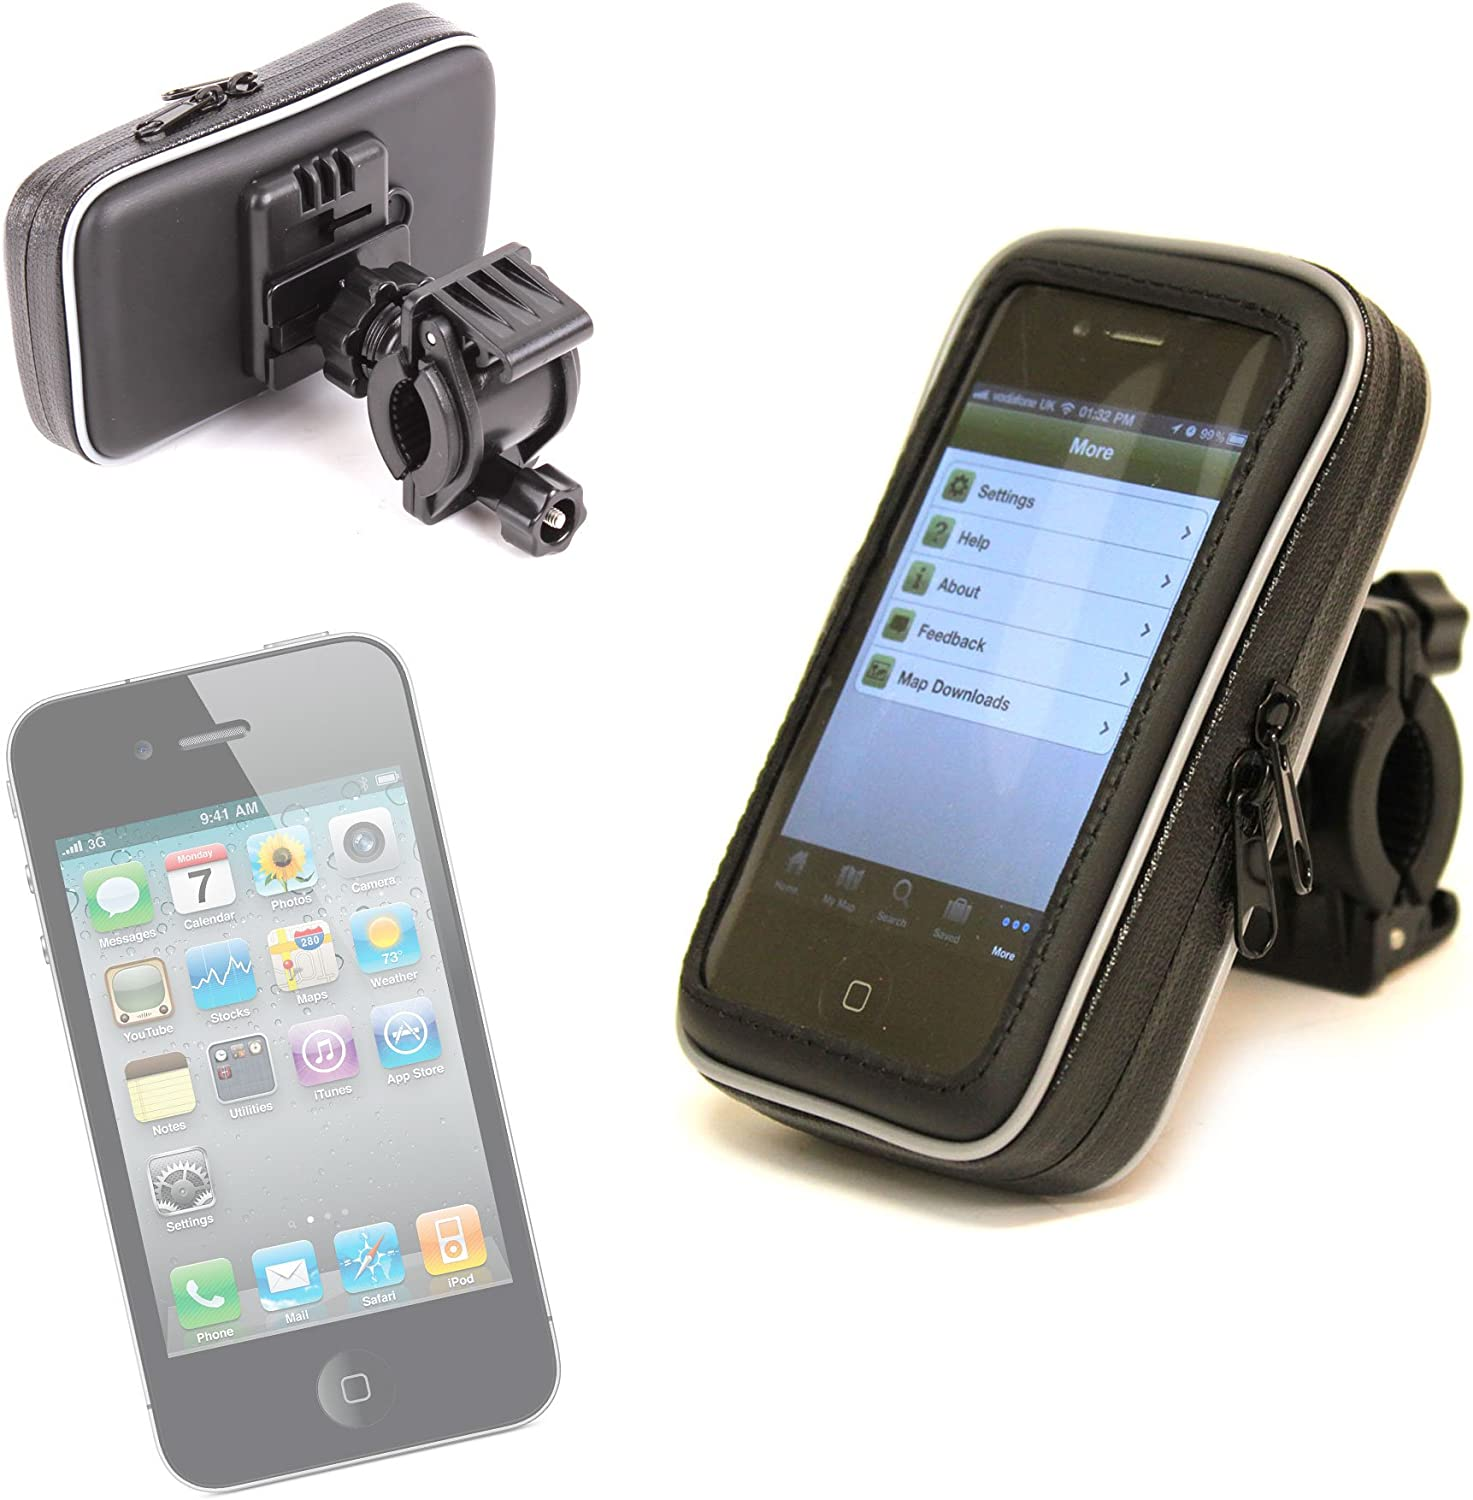 DURAGADGET Water Resistant Cycle/Bike Cell Phone Mount Hard Case for Apple iPhone 4, 4S (C Spire Wireless), 3GS & iPod Touch (4g, 8gb, 16gb, 32gb)